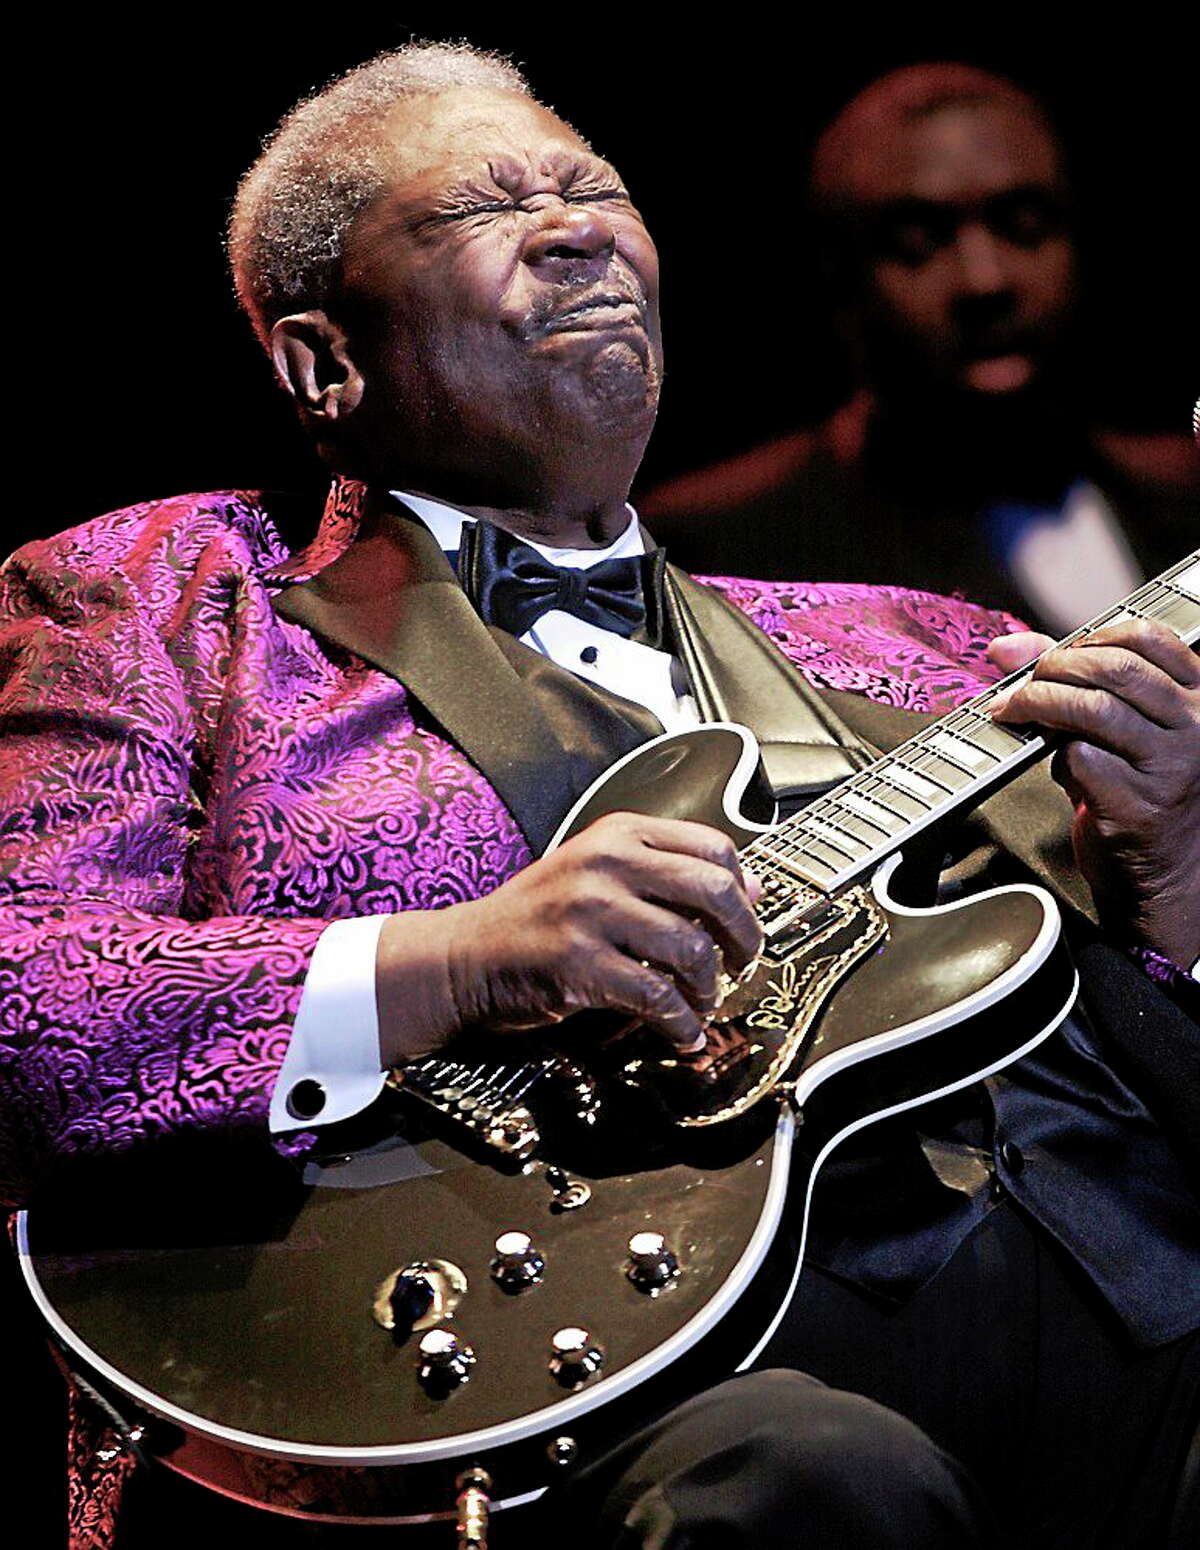 Blues guitarist, singer and songwriter B. B. King, born Riley B. King, is shown performing on stage during a live concert appearance.